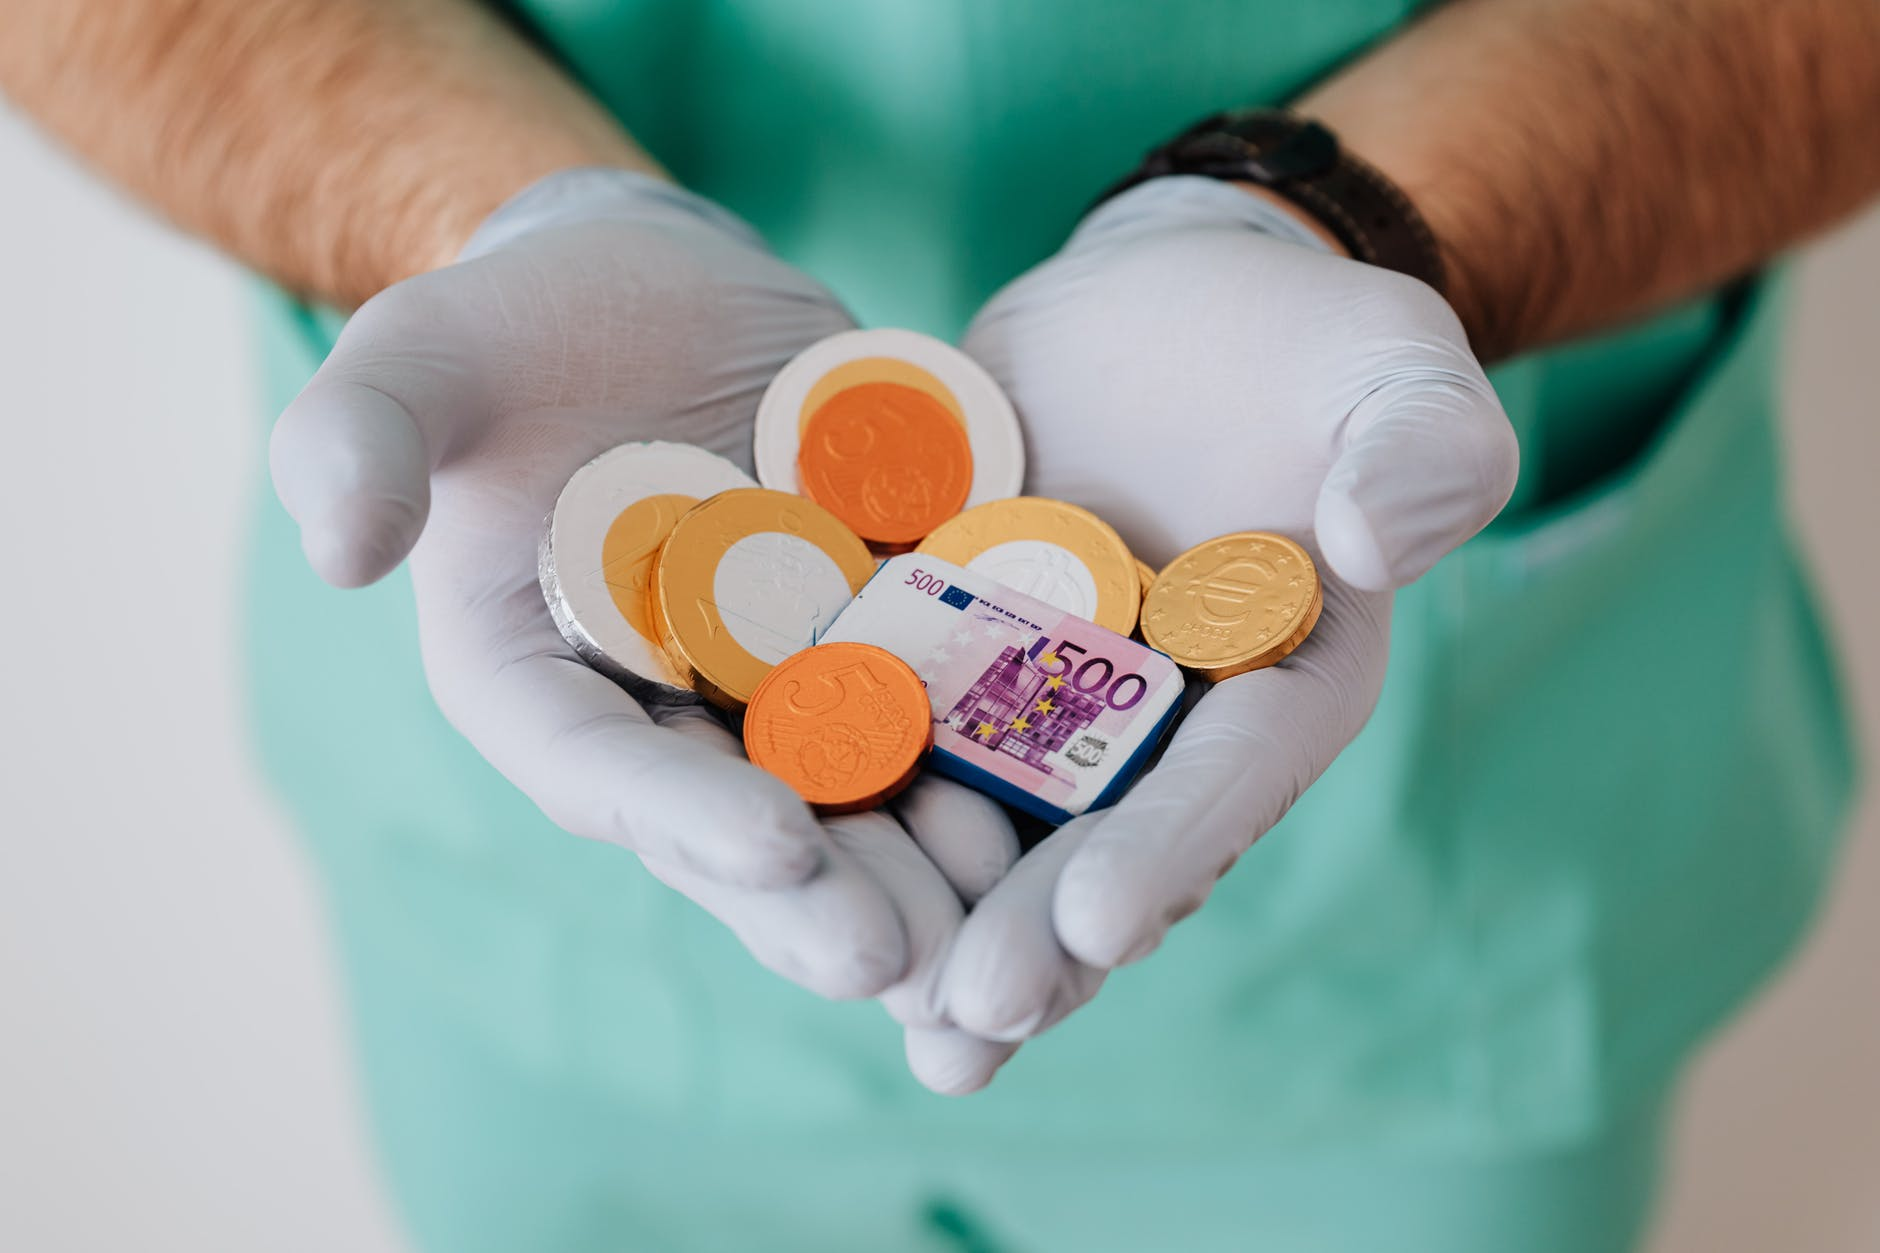 faceless doctor with chocolate coins in hands